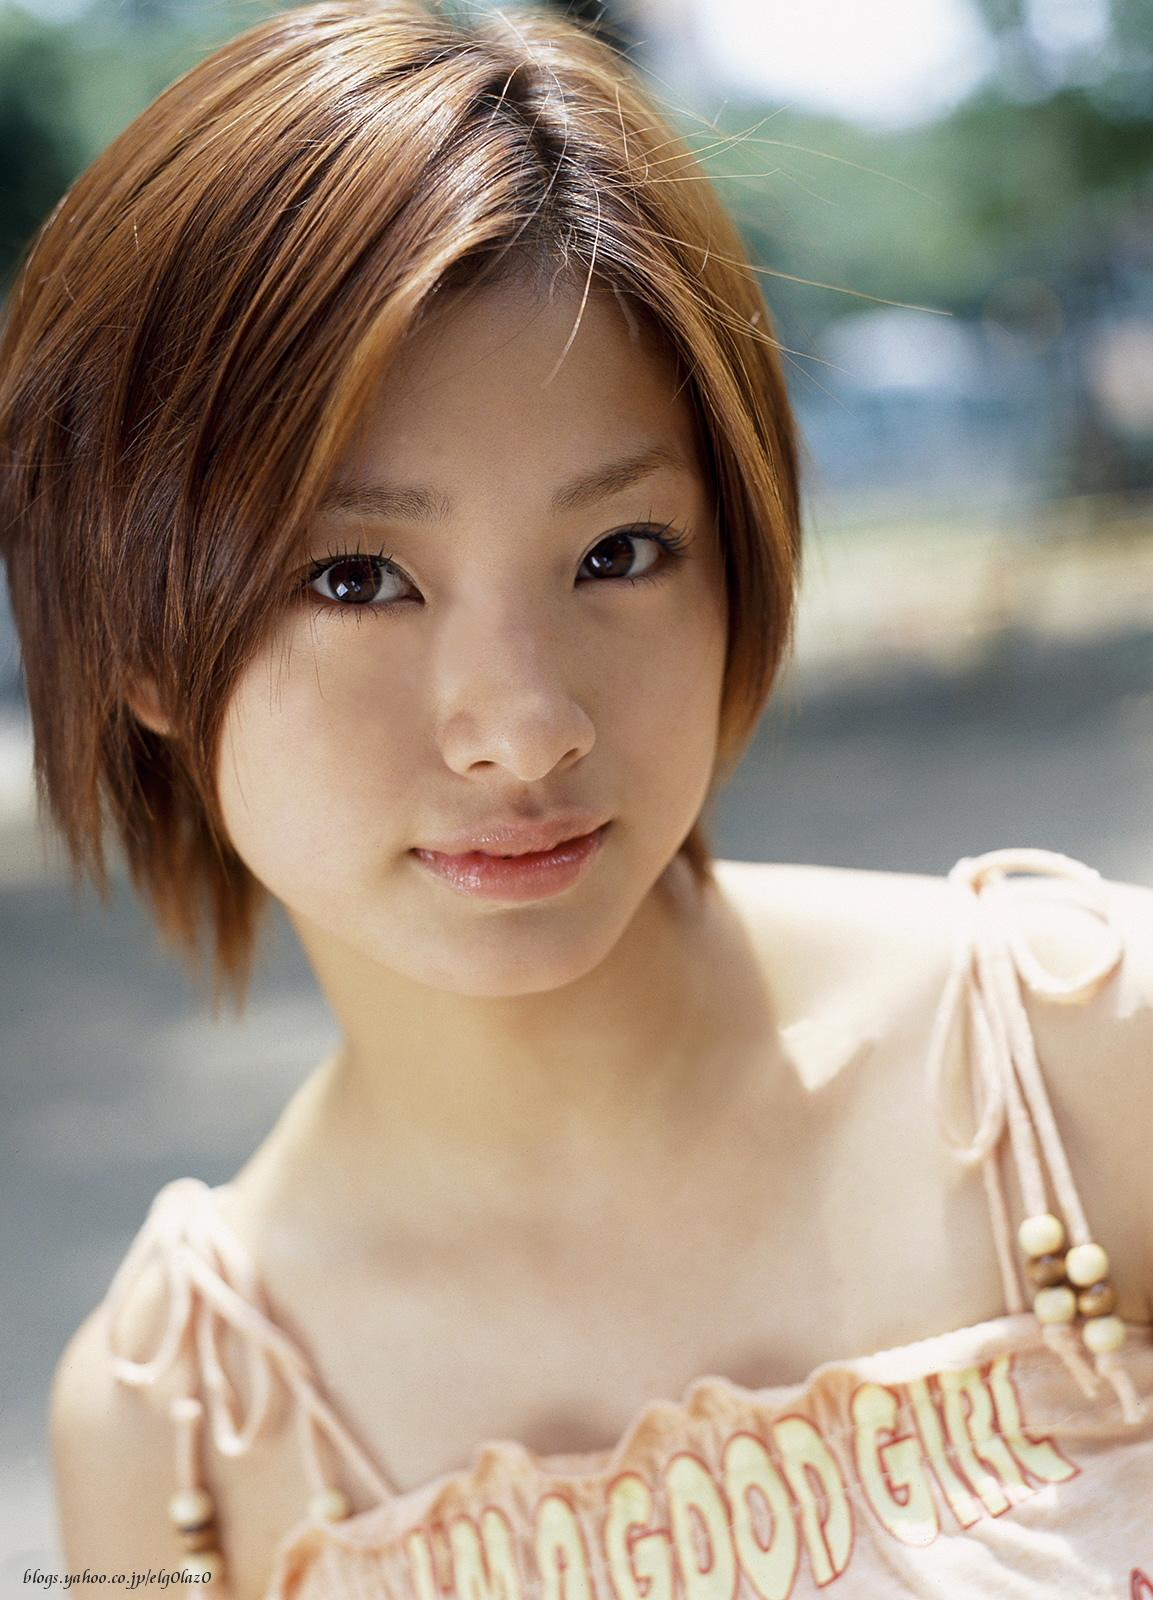 【video】aya ueto,japan famous actress sex-tape was leaked